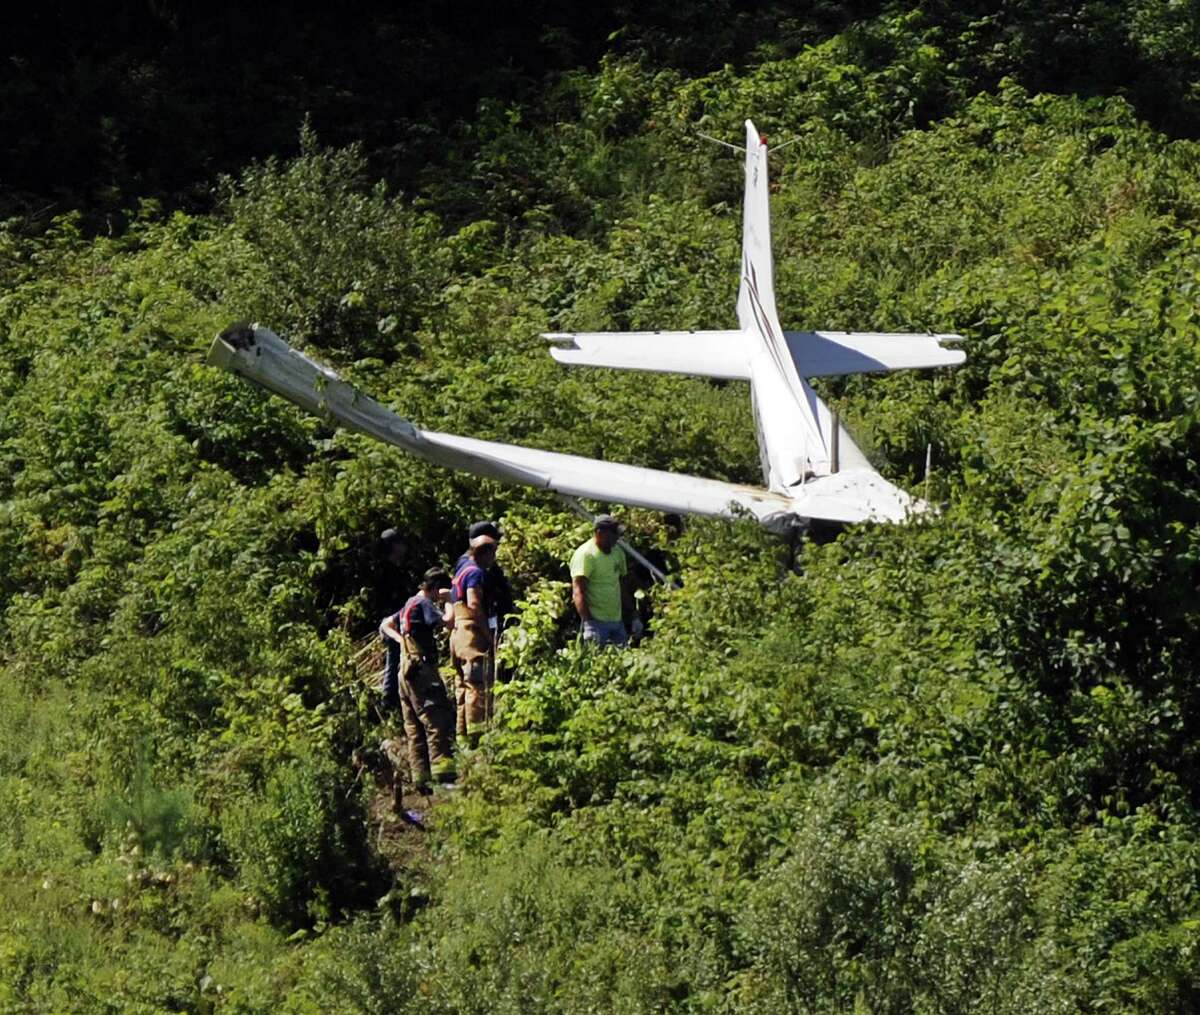 Three people are injured after a plane crashed about a mile from Danbury Airport on Sunday morning, police confirmed. The crash occured off Miry Brook Road near the Dog Park around 10:30 a.m.